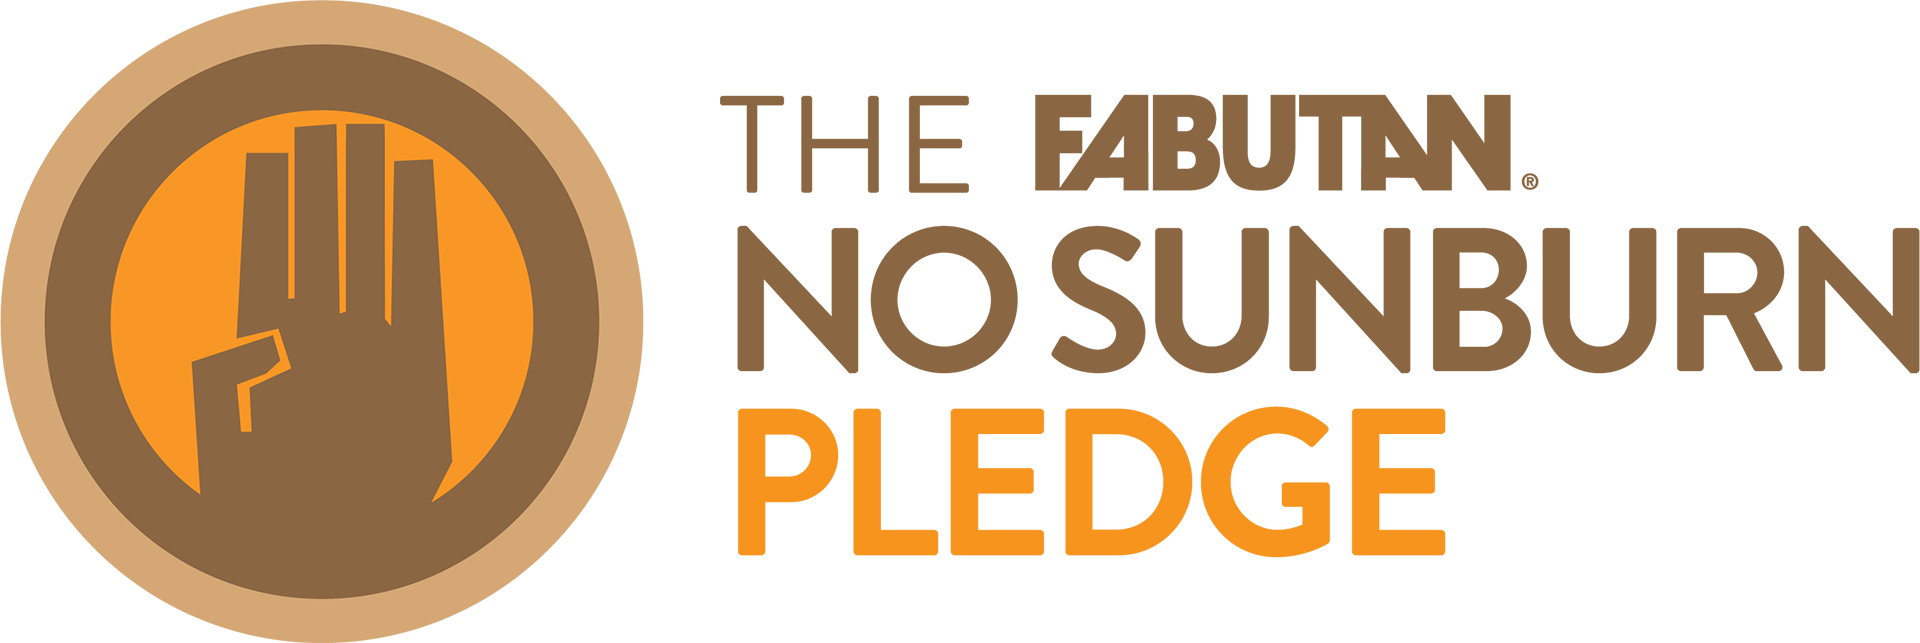 The FABUTAN No Sunburn Pledge